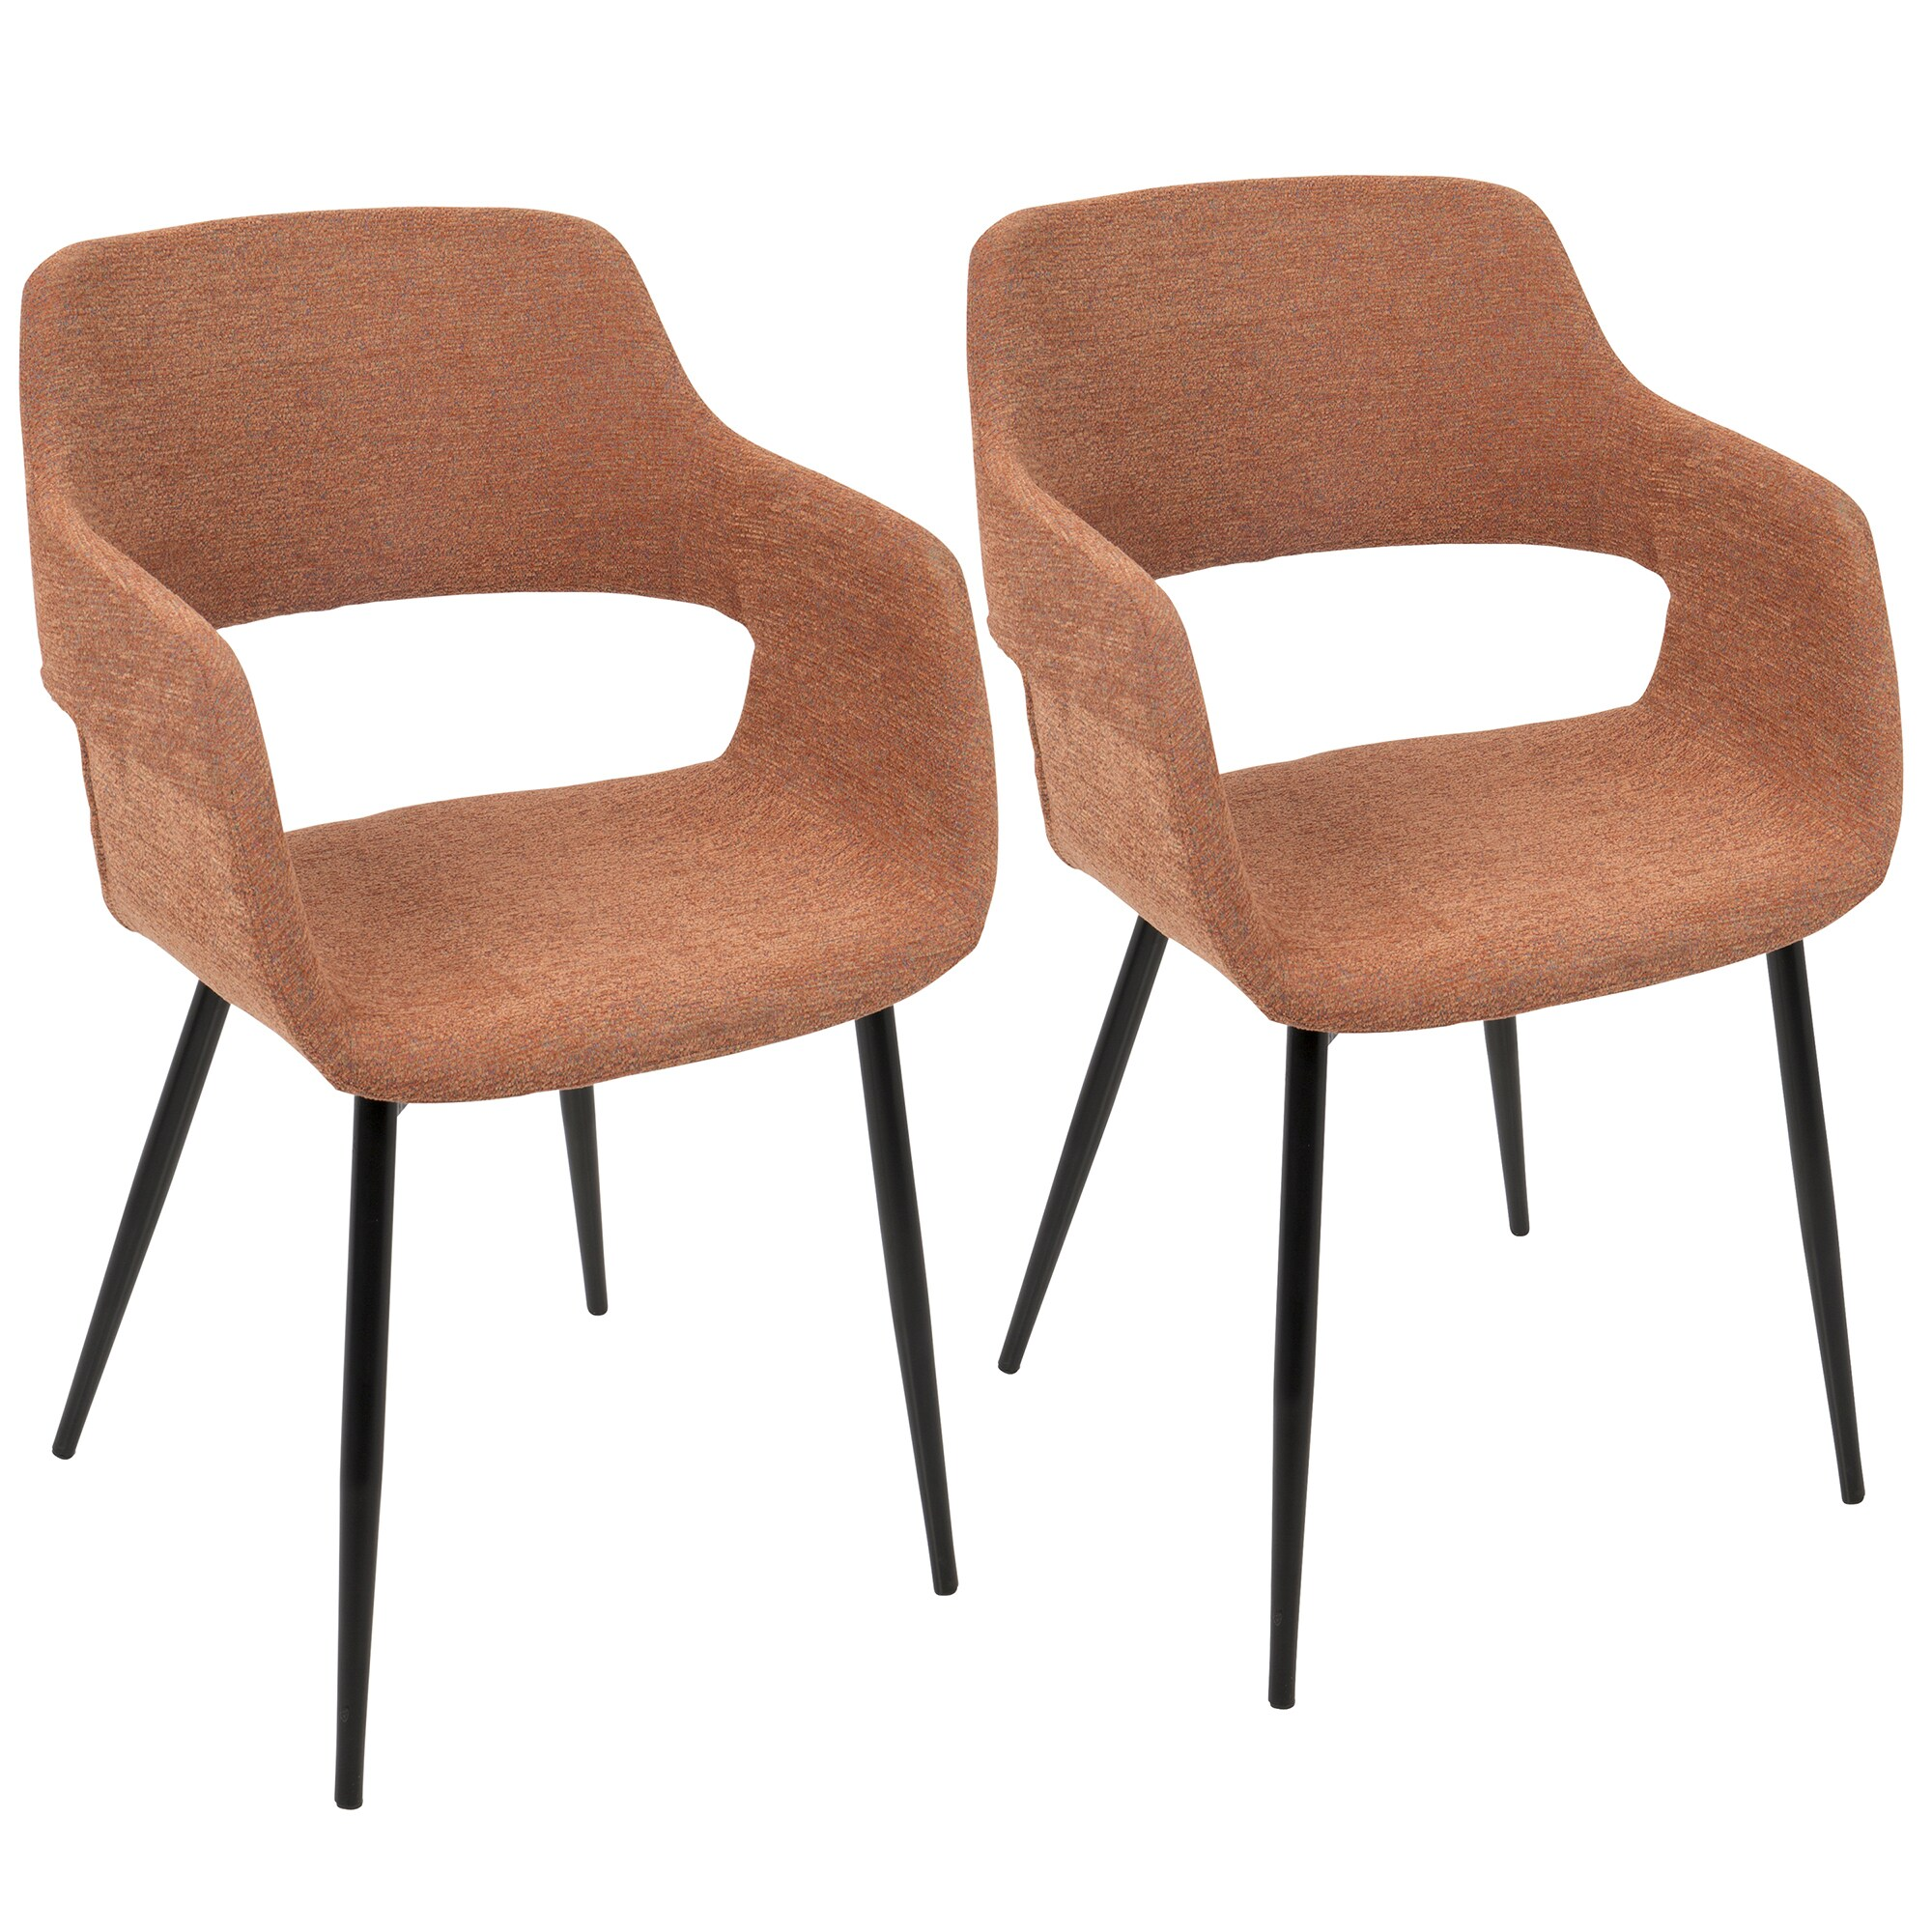 Buy Orange Living Room Chairs Online At Overstock